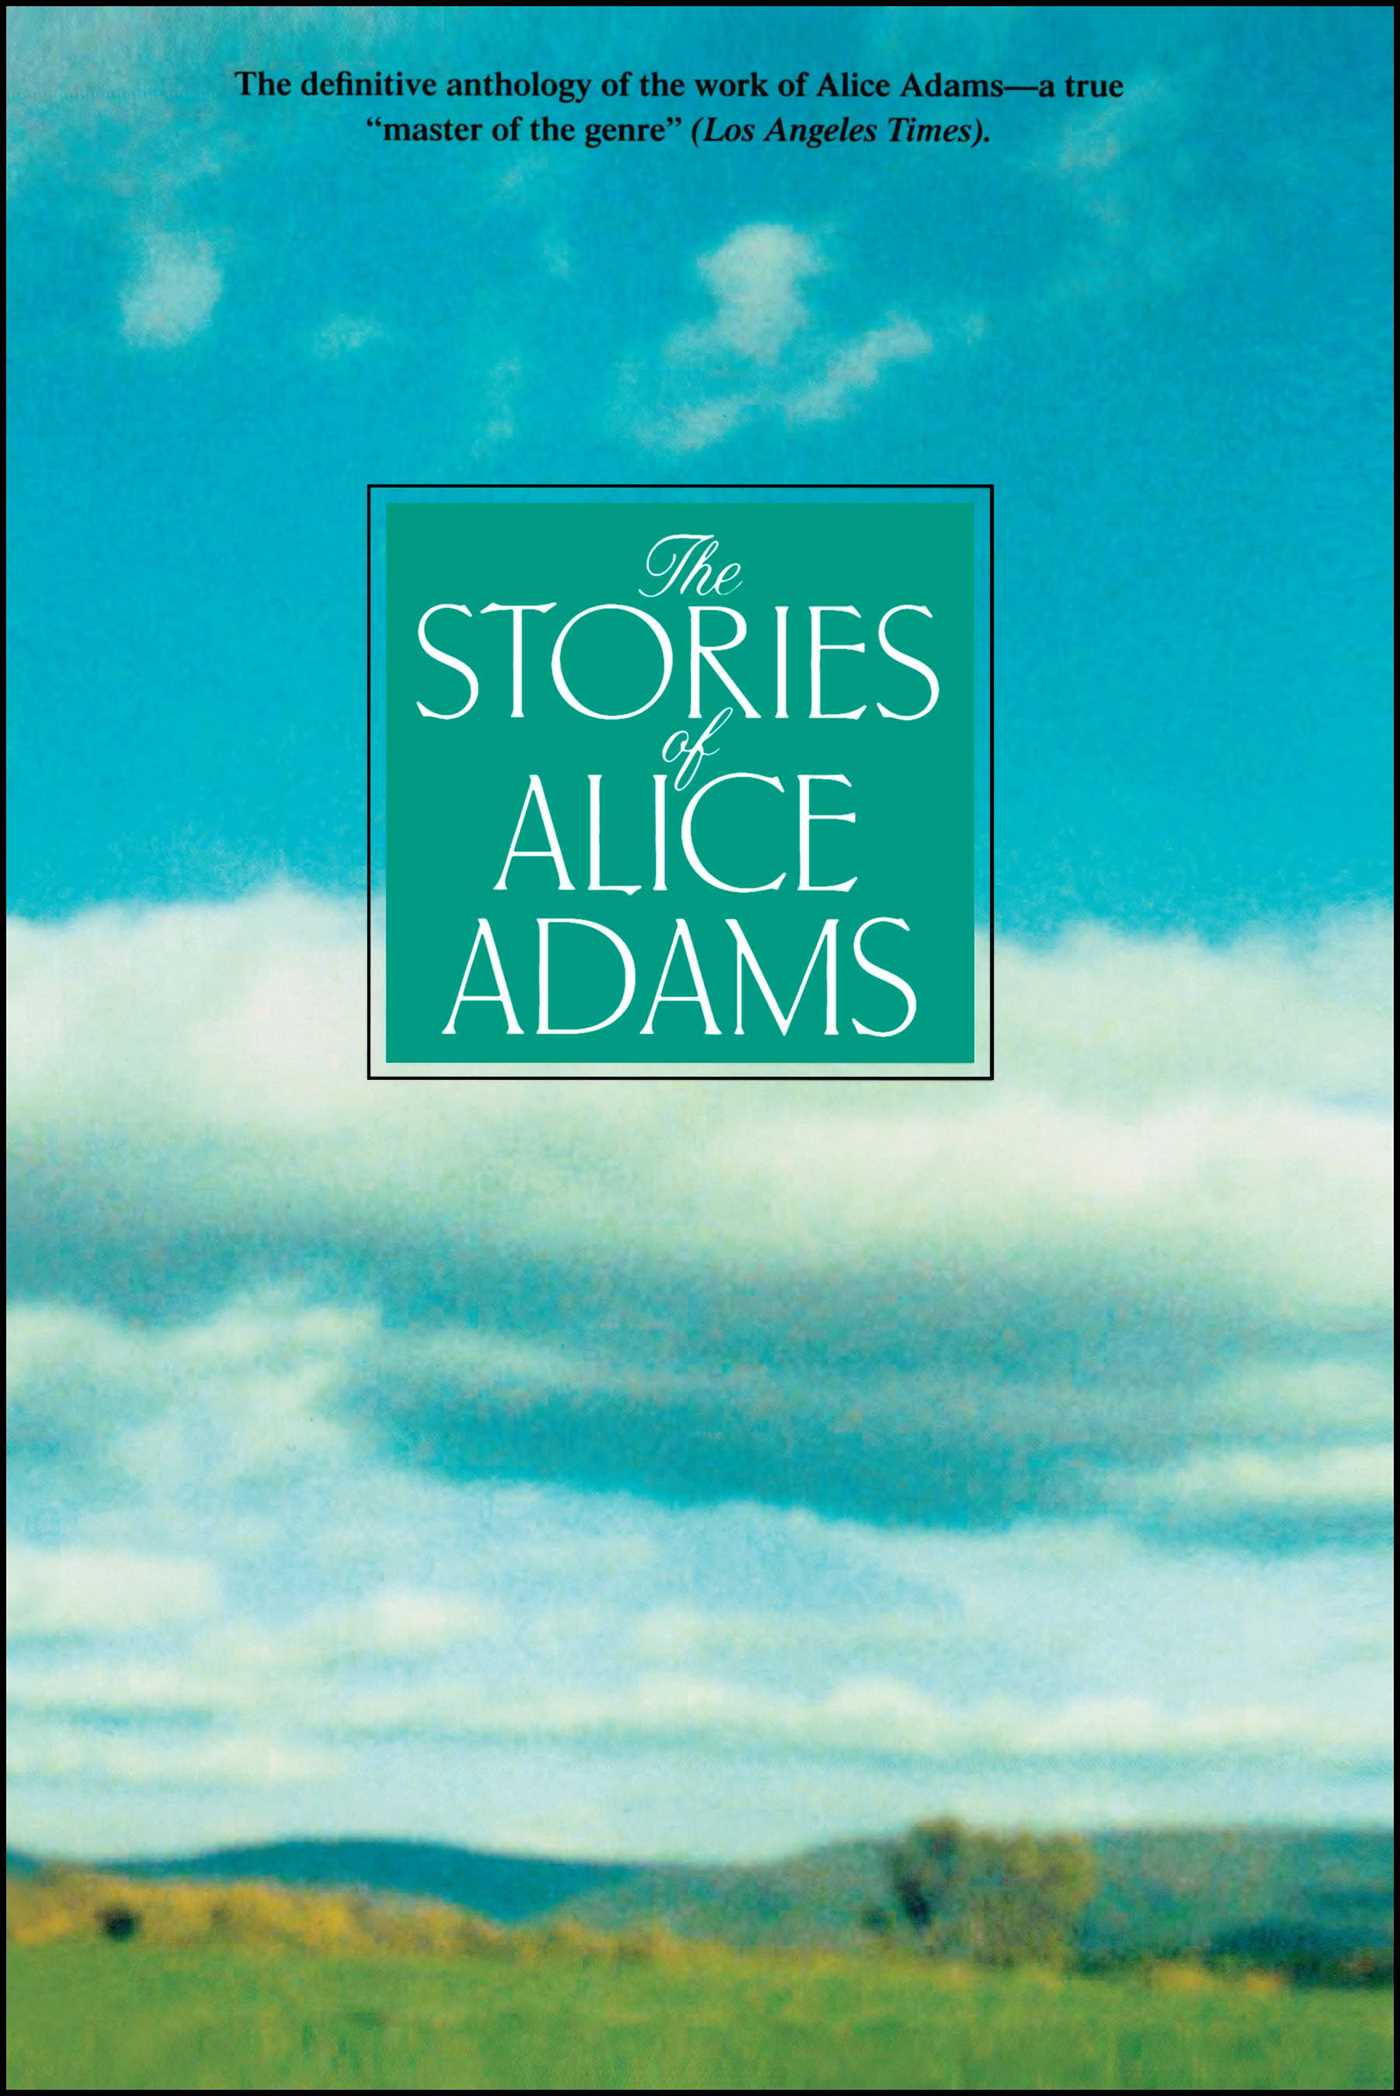 The stories of alice adams 9780743464505 hr